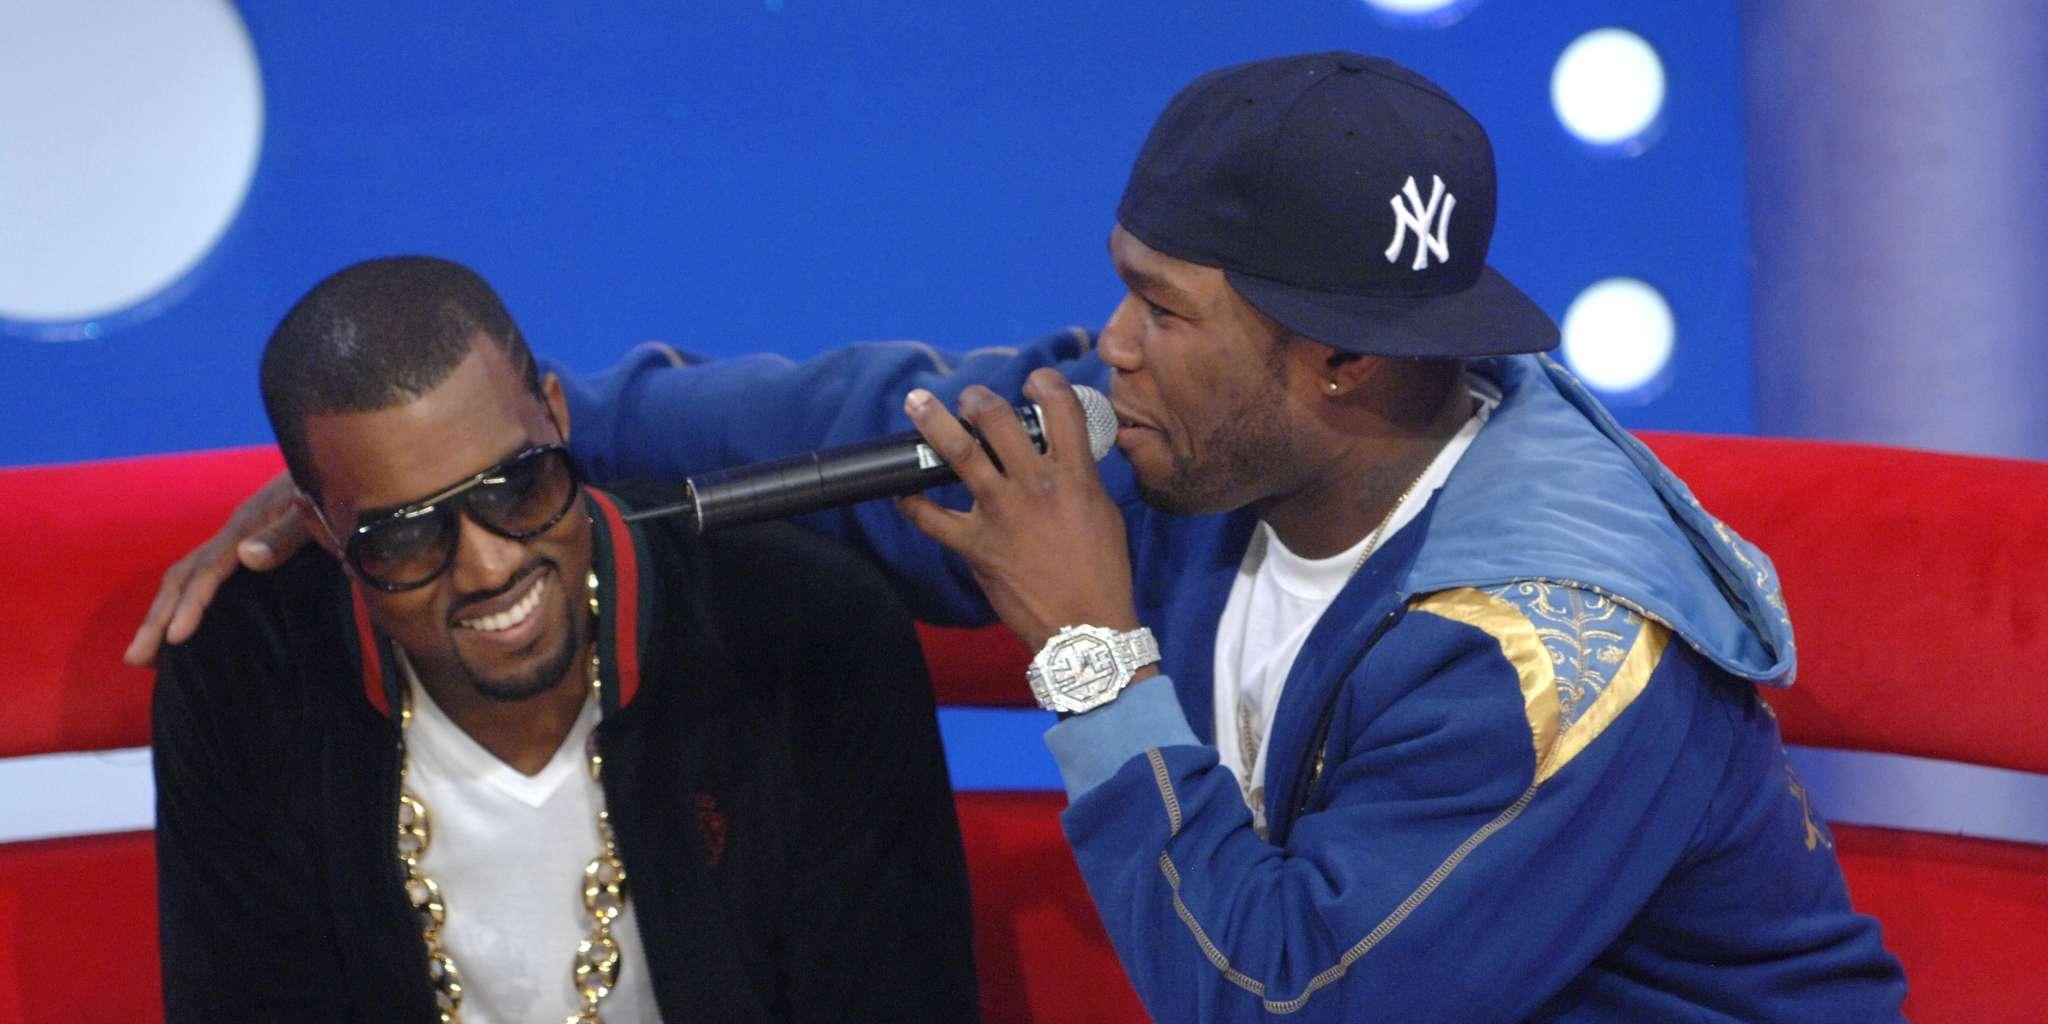 50 Cent Drags Kanye West's Clothing Line